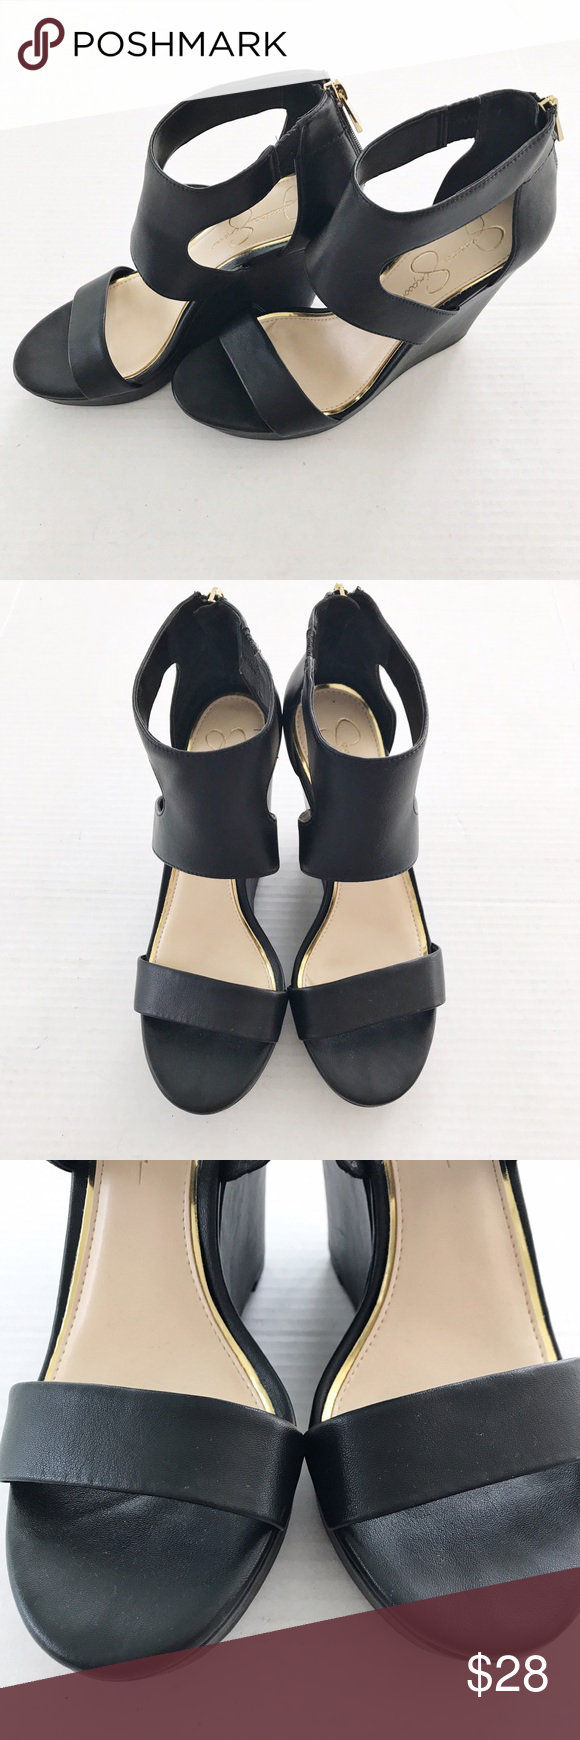 Jessica Simpson Black Wedges Worn a handful of times and in great condition. Black wedges with zippers for easy on/off. Jessica Simpson Shoes Wedges